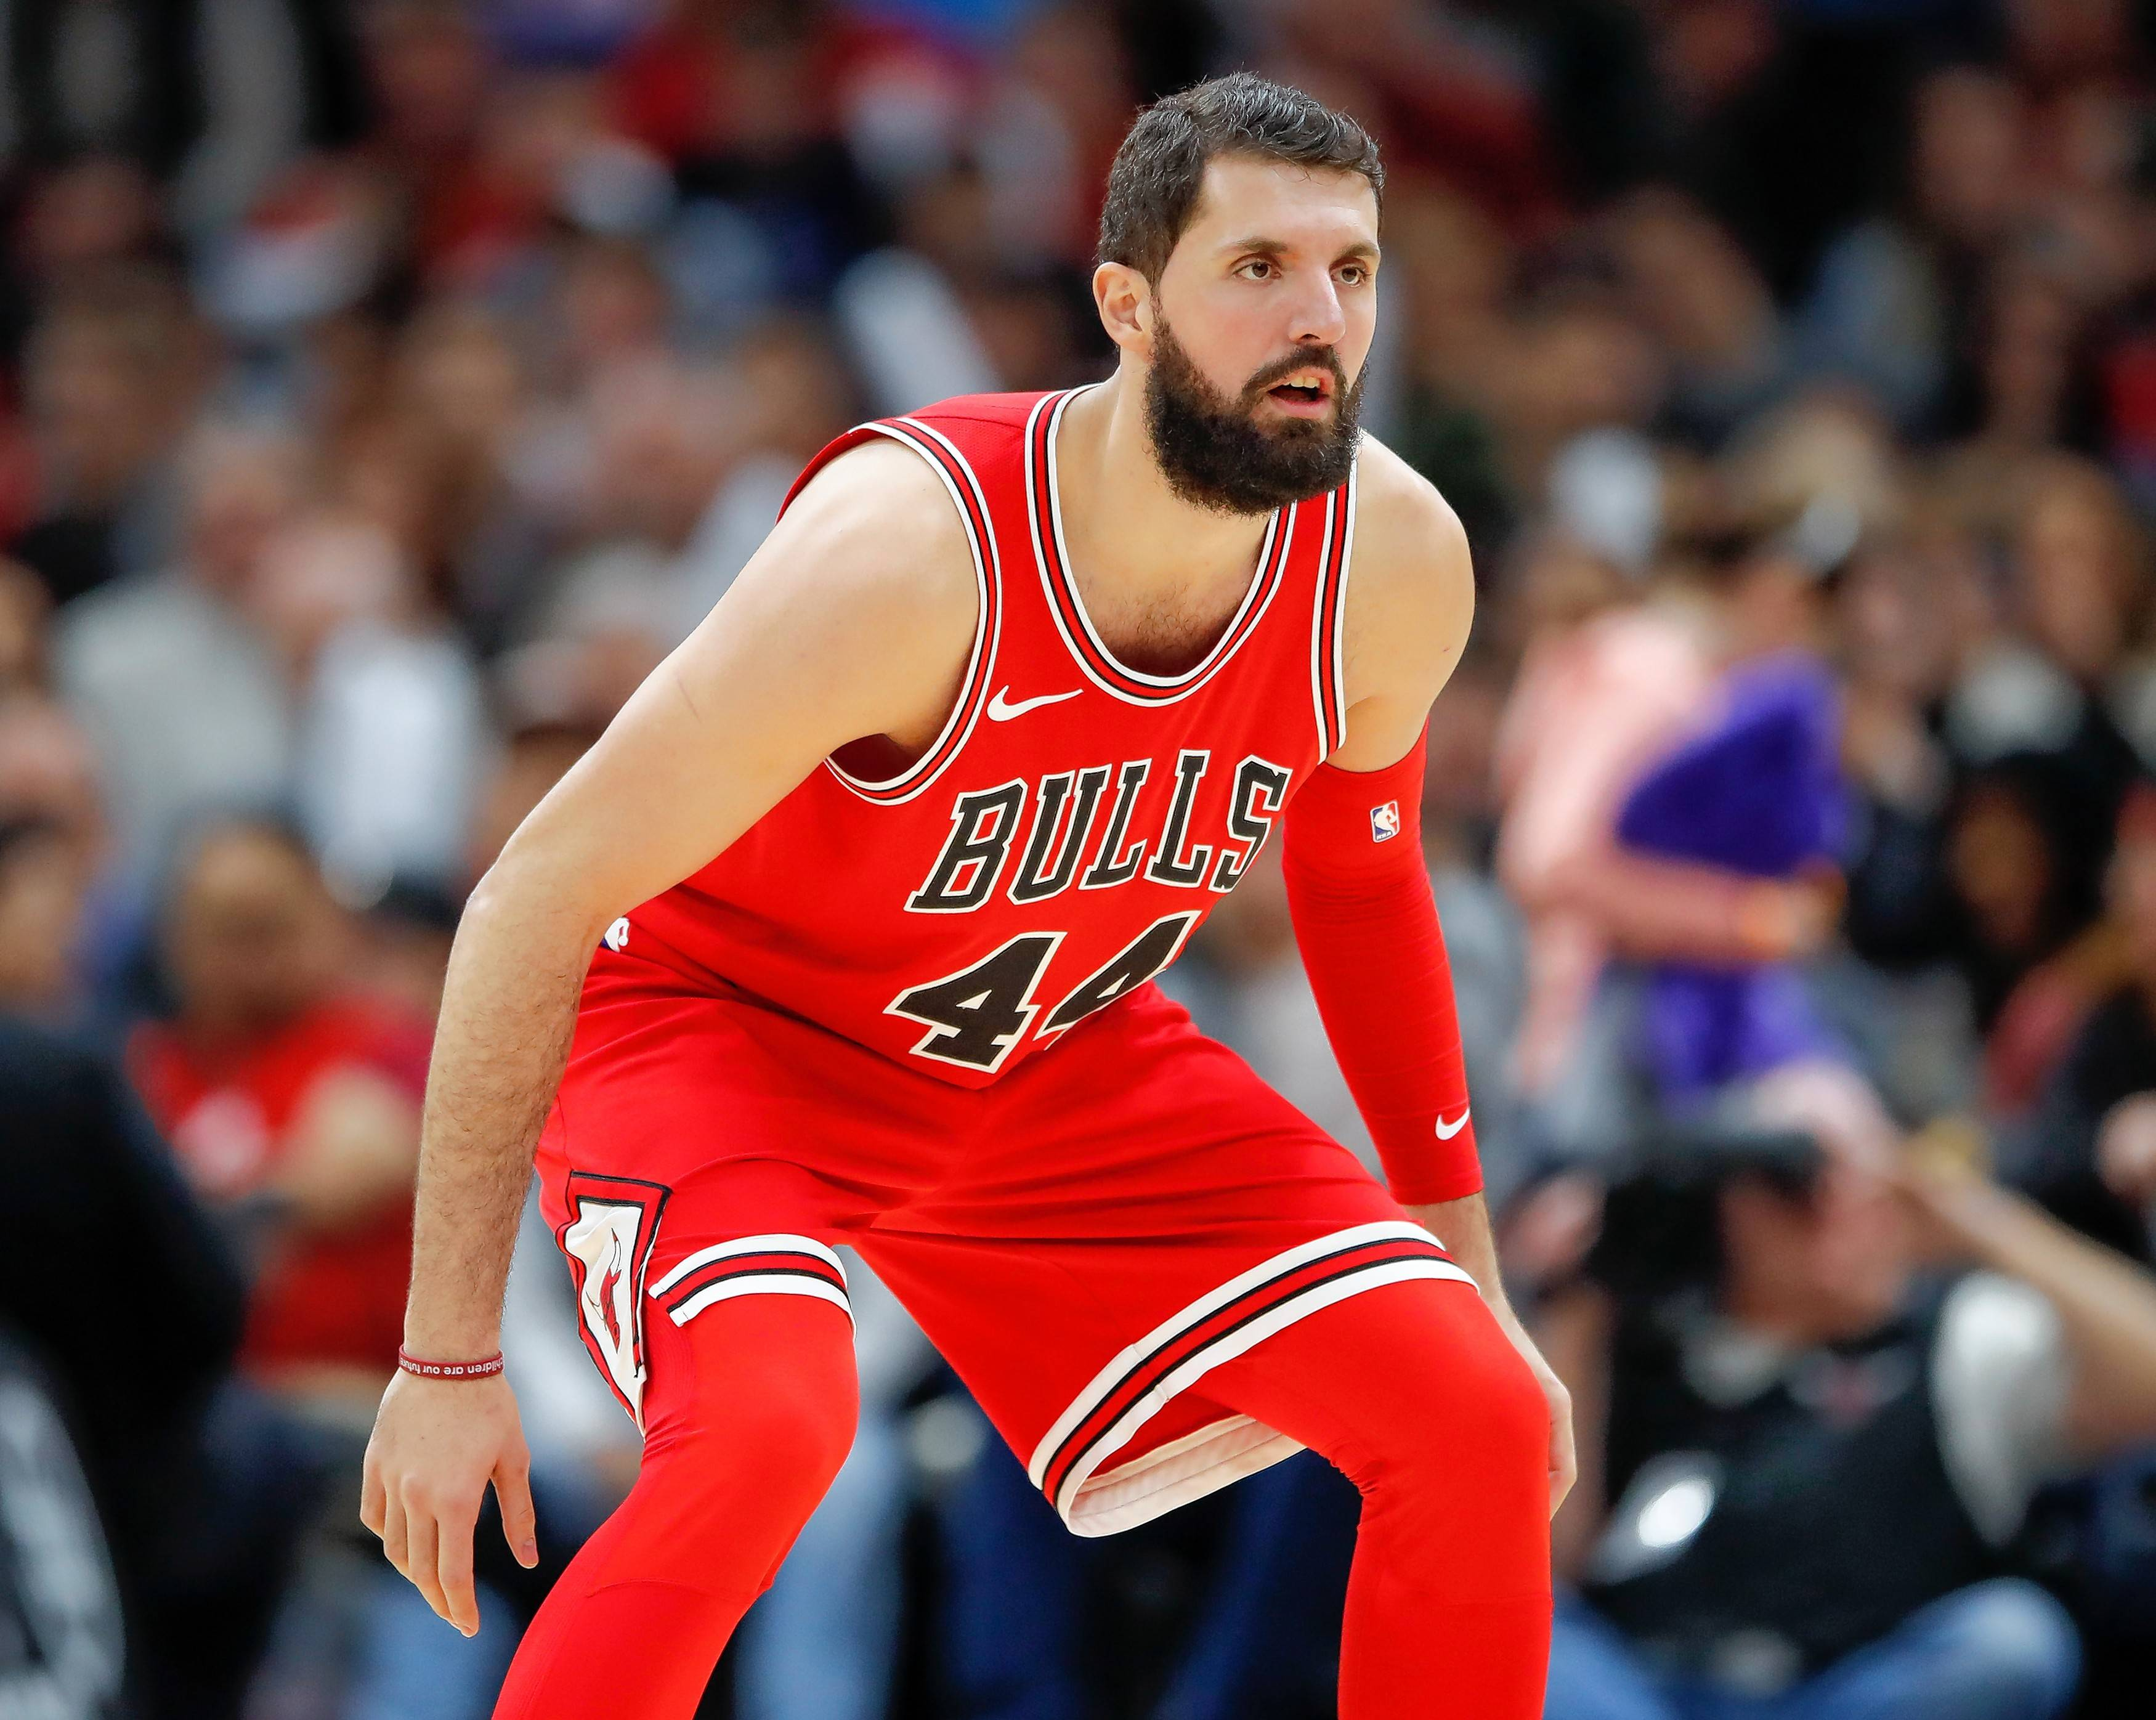 Chicago Bulls forward Nikola Mirotic could be headed to New Orleans if the Bulls and Pelicans can agree on a deal.